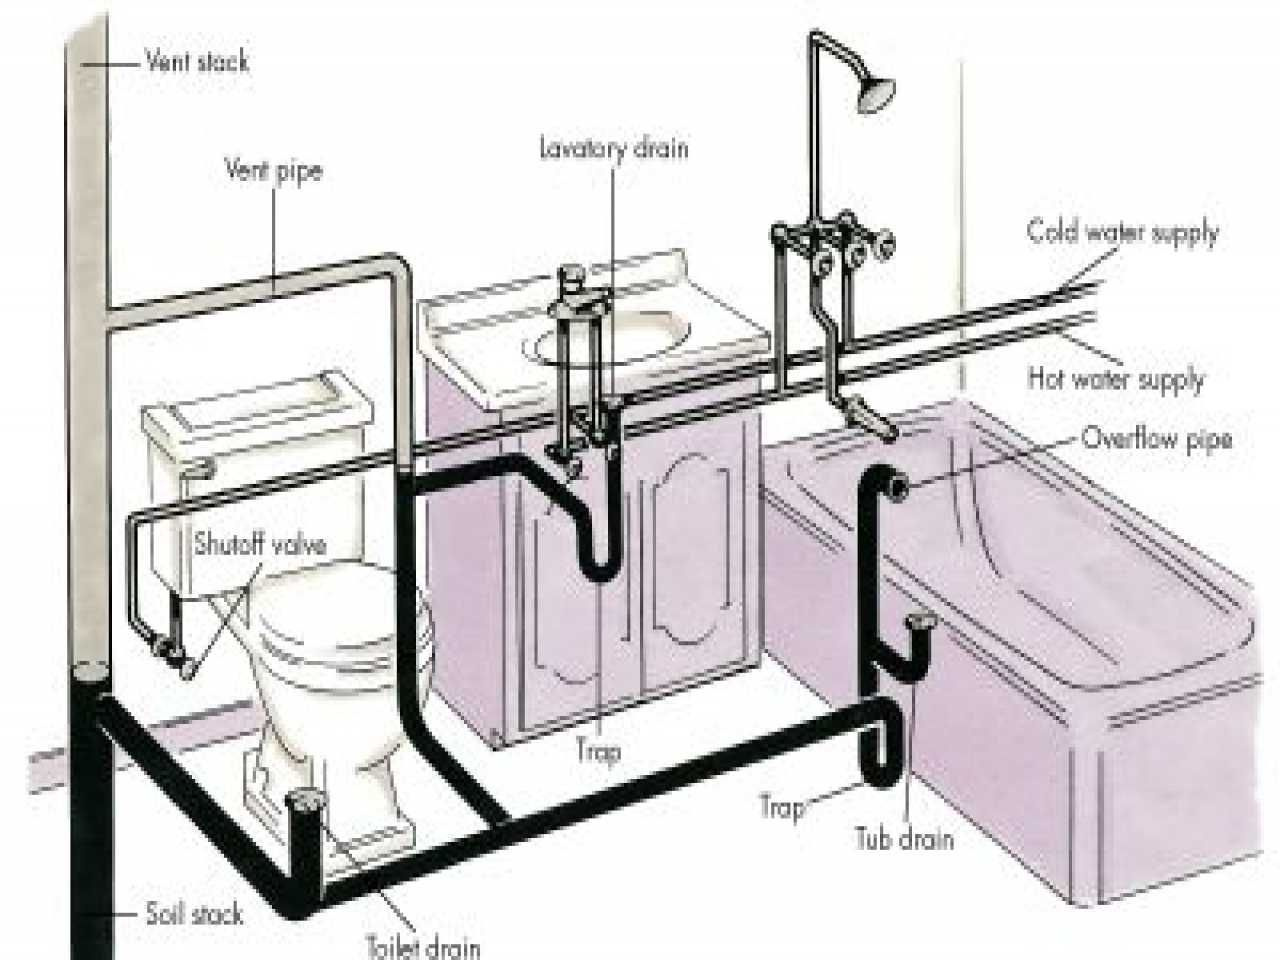 icymi bathroom plumbing diagram for rough in [ 1280 x 960 Pixel ]